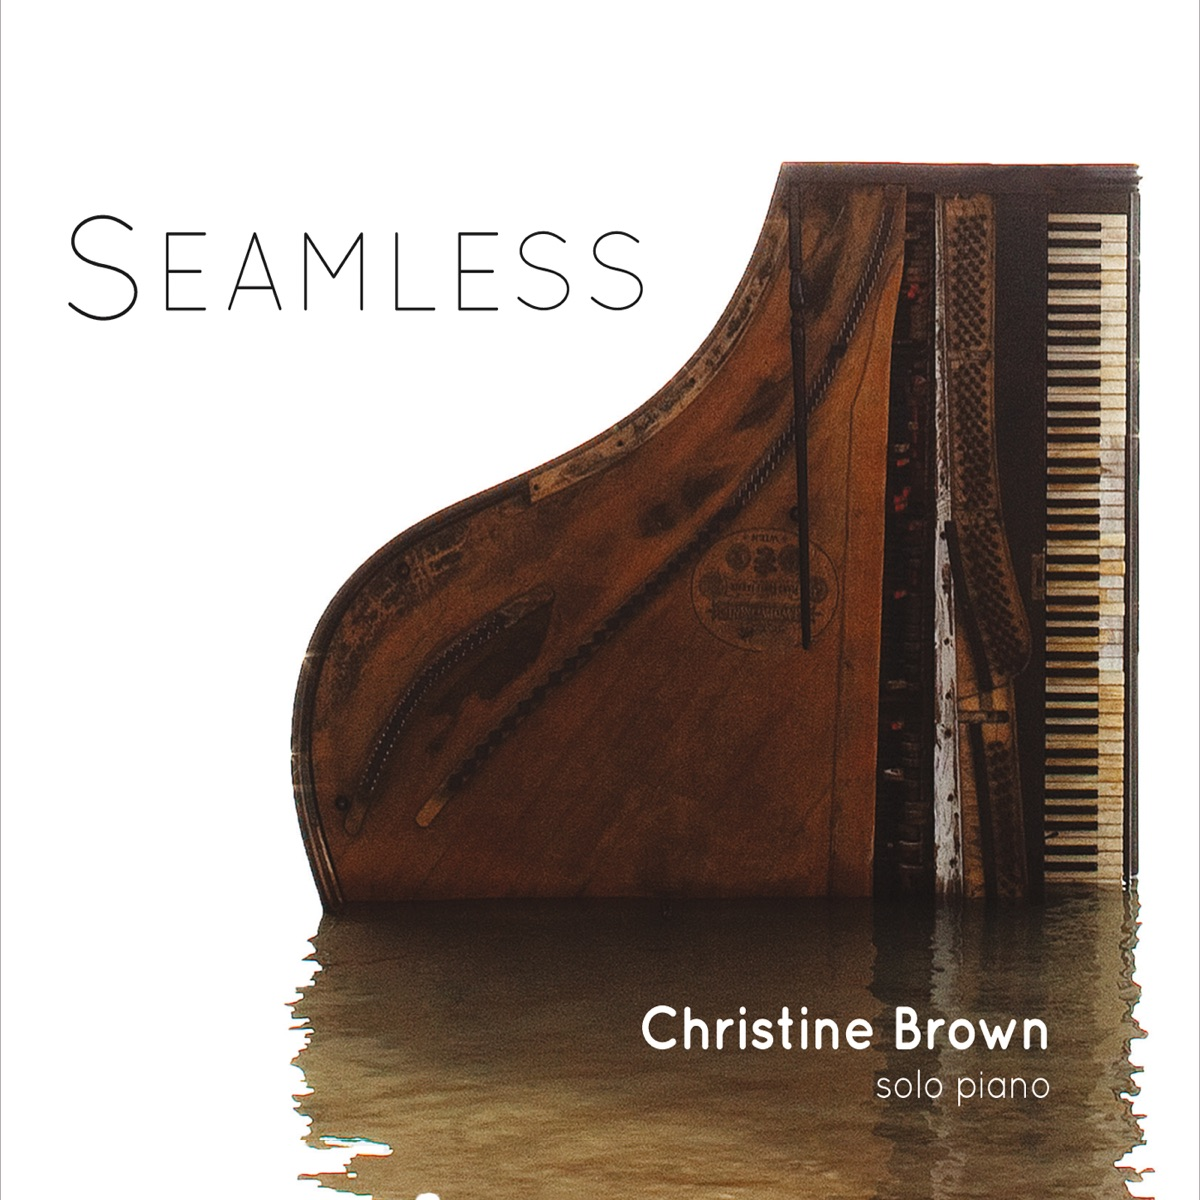 Seamless Christine Brown CD cover